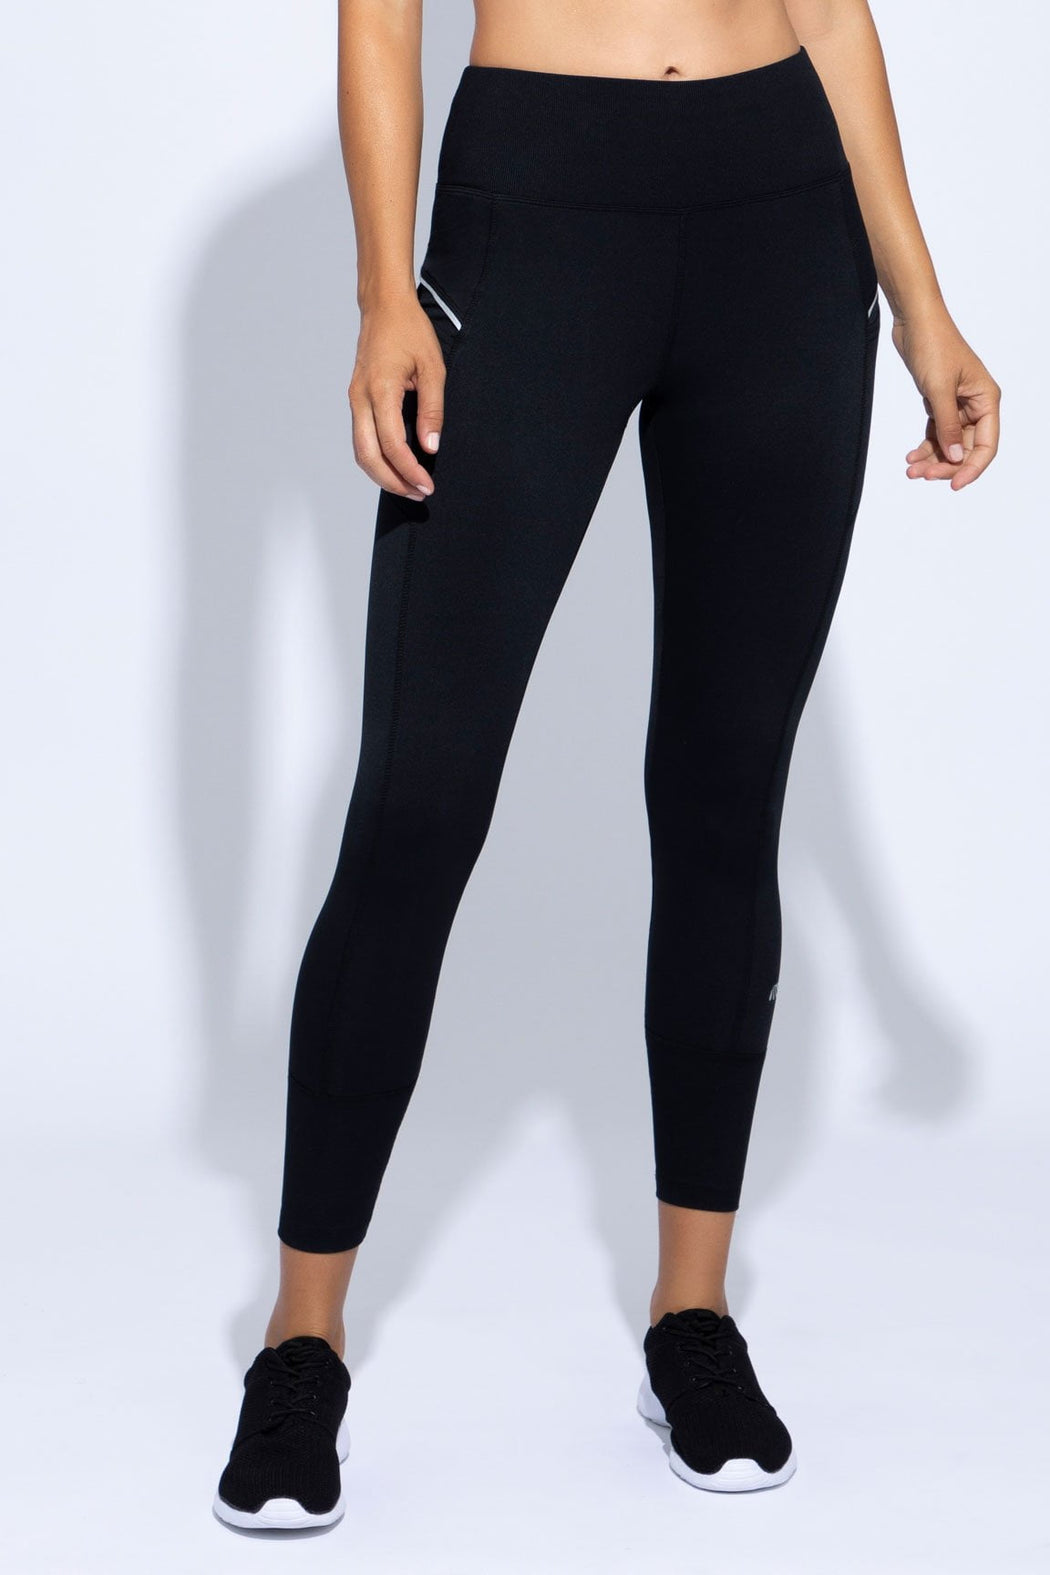 Jordan Rib Trim Legging (black)